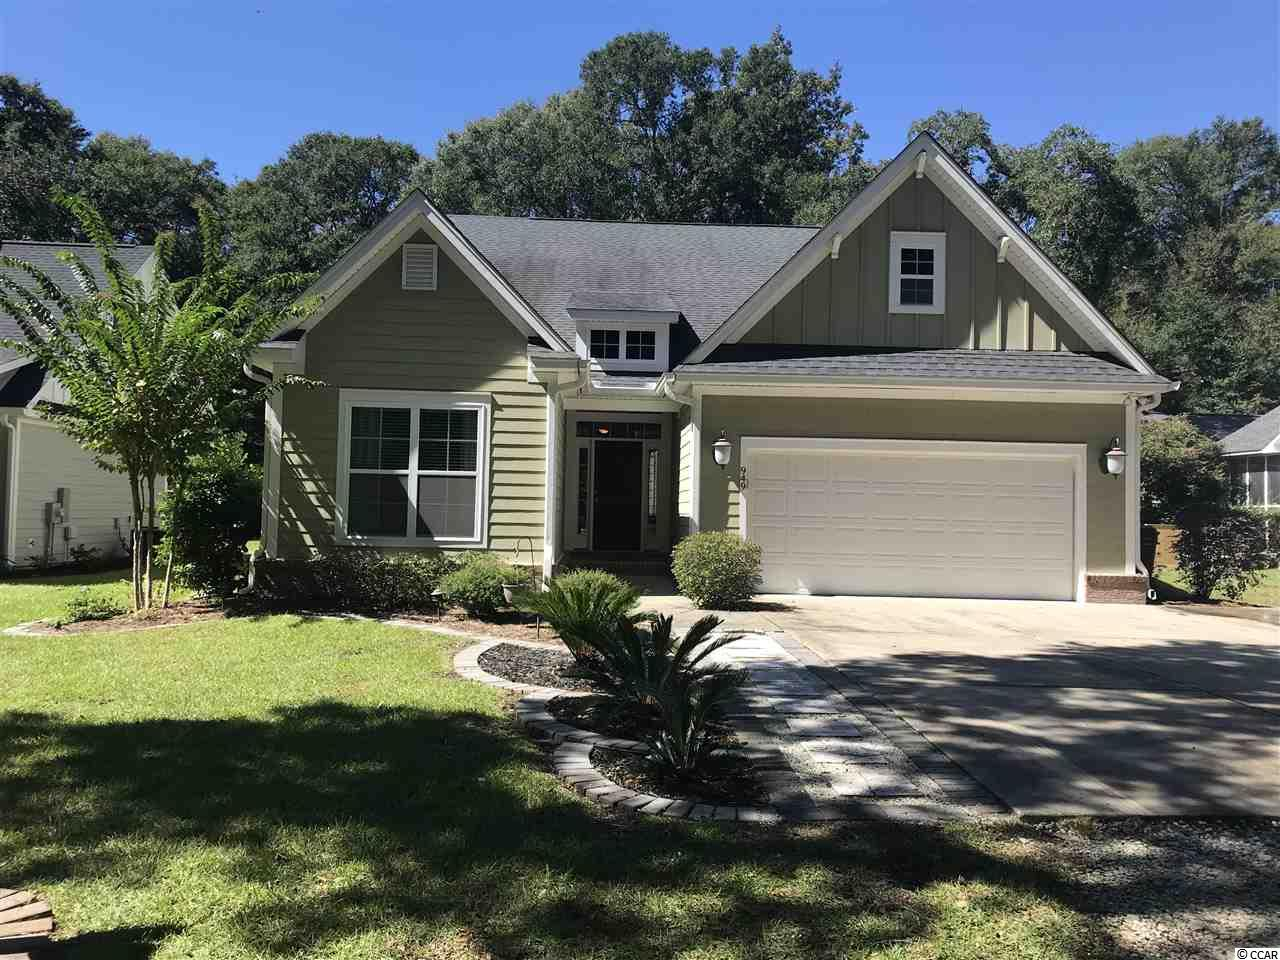 This 4 BR, 3 1/2 BA home in Pawleys Island is stunning! The enormous master bedroom has a luxurious bath with custom tiled shower, garden tub, double sink, and a huge walk-in closet. The kitchen and breakfast area are designer perfect with granite countertops and stainless steel appliances. The upstairs bedroom has its own bath and bonus room, The living room has a high ceiling and is open to the kitchen for easy entertaining. Classic touches throughout this home include hard wood flooring, tray ceilings, crown molding, and a back screen porch. This home is in a great location -close to the boat landing on the Waccamaw River and only a short distance to the beach. Home is not in a flood zone. Hagley Estates is a community known for easy living ..CHECK IT OUT!